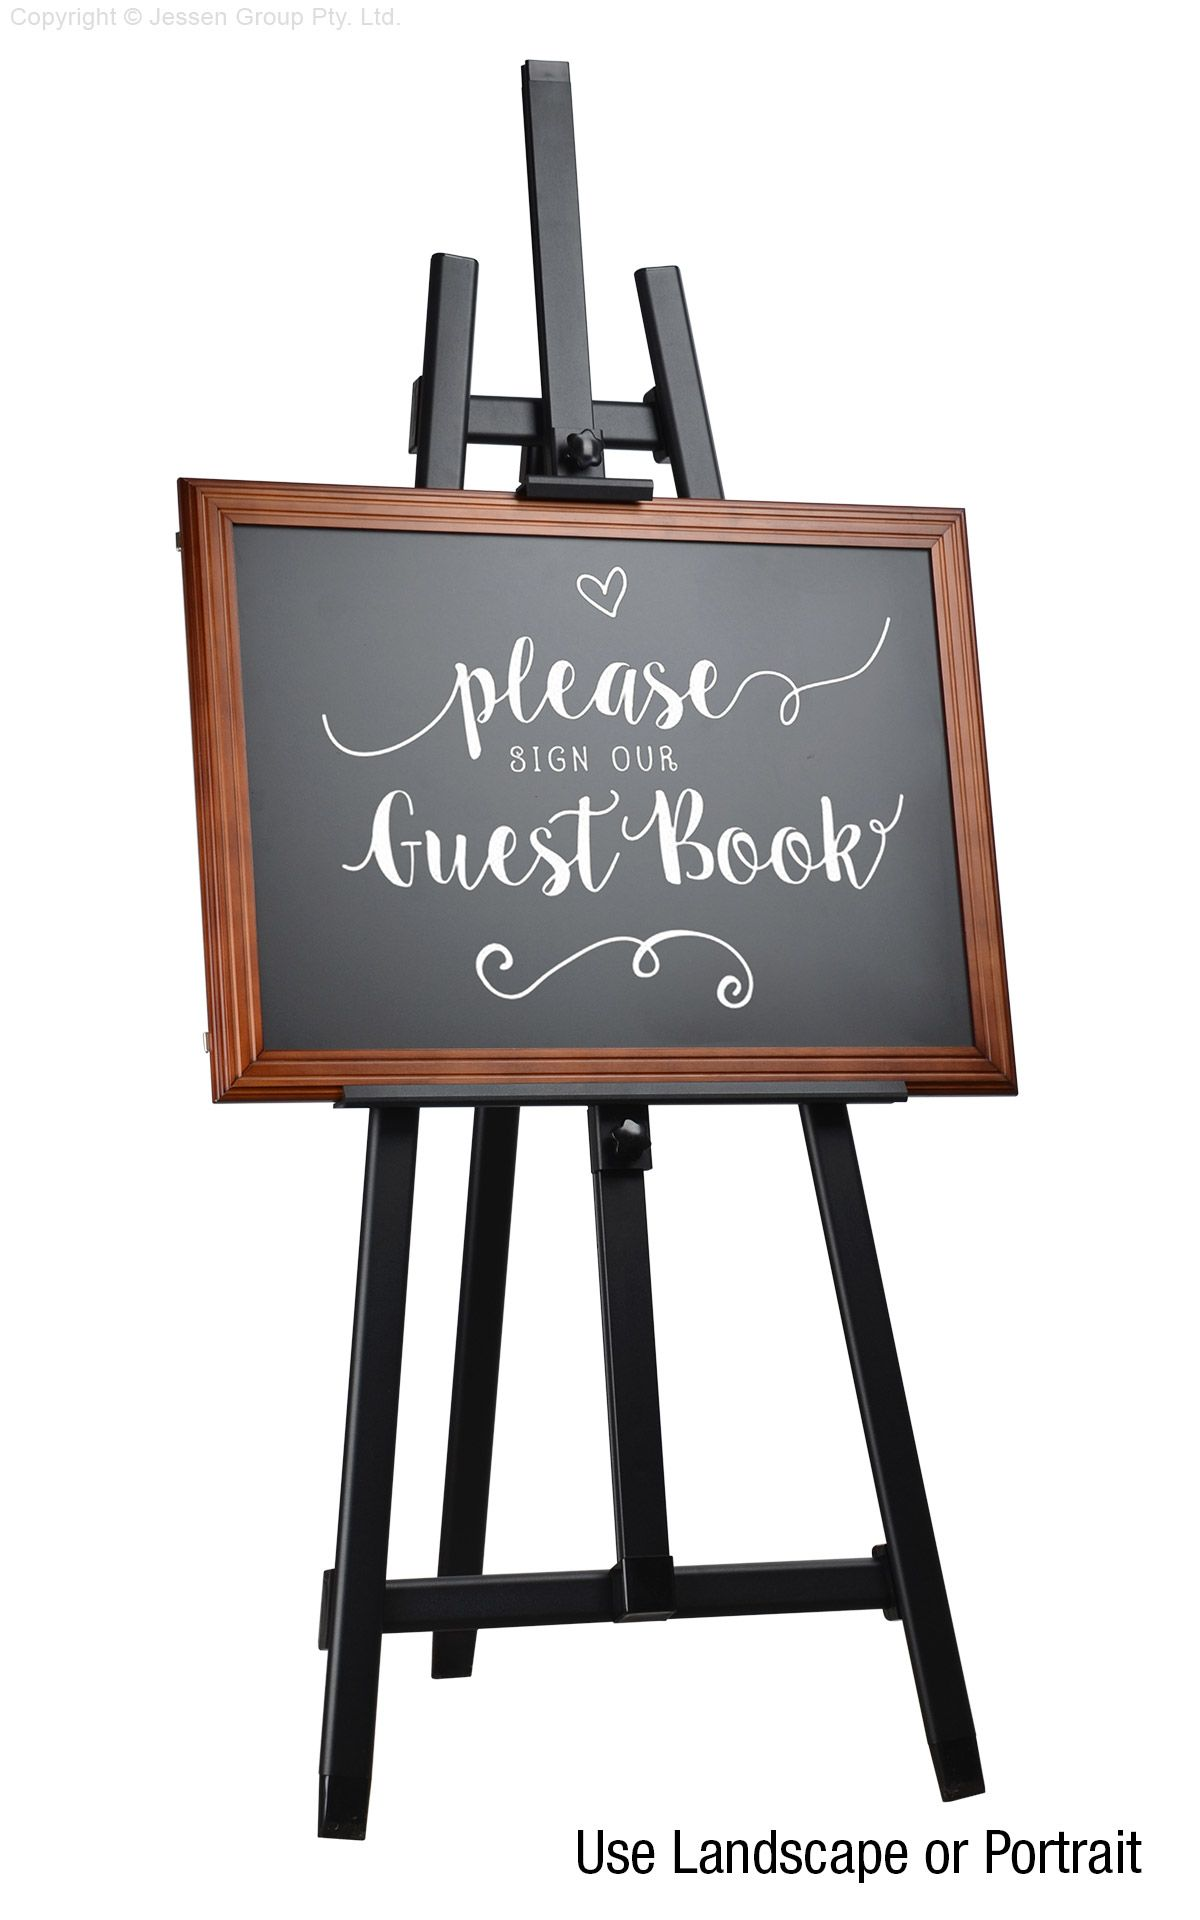 Free Standing Chalkboard Blackboard Weddings Restaurant Cafes Events Menus Shop Business Industrial Business Signs